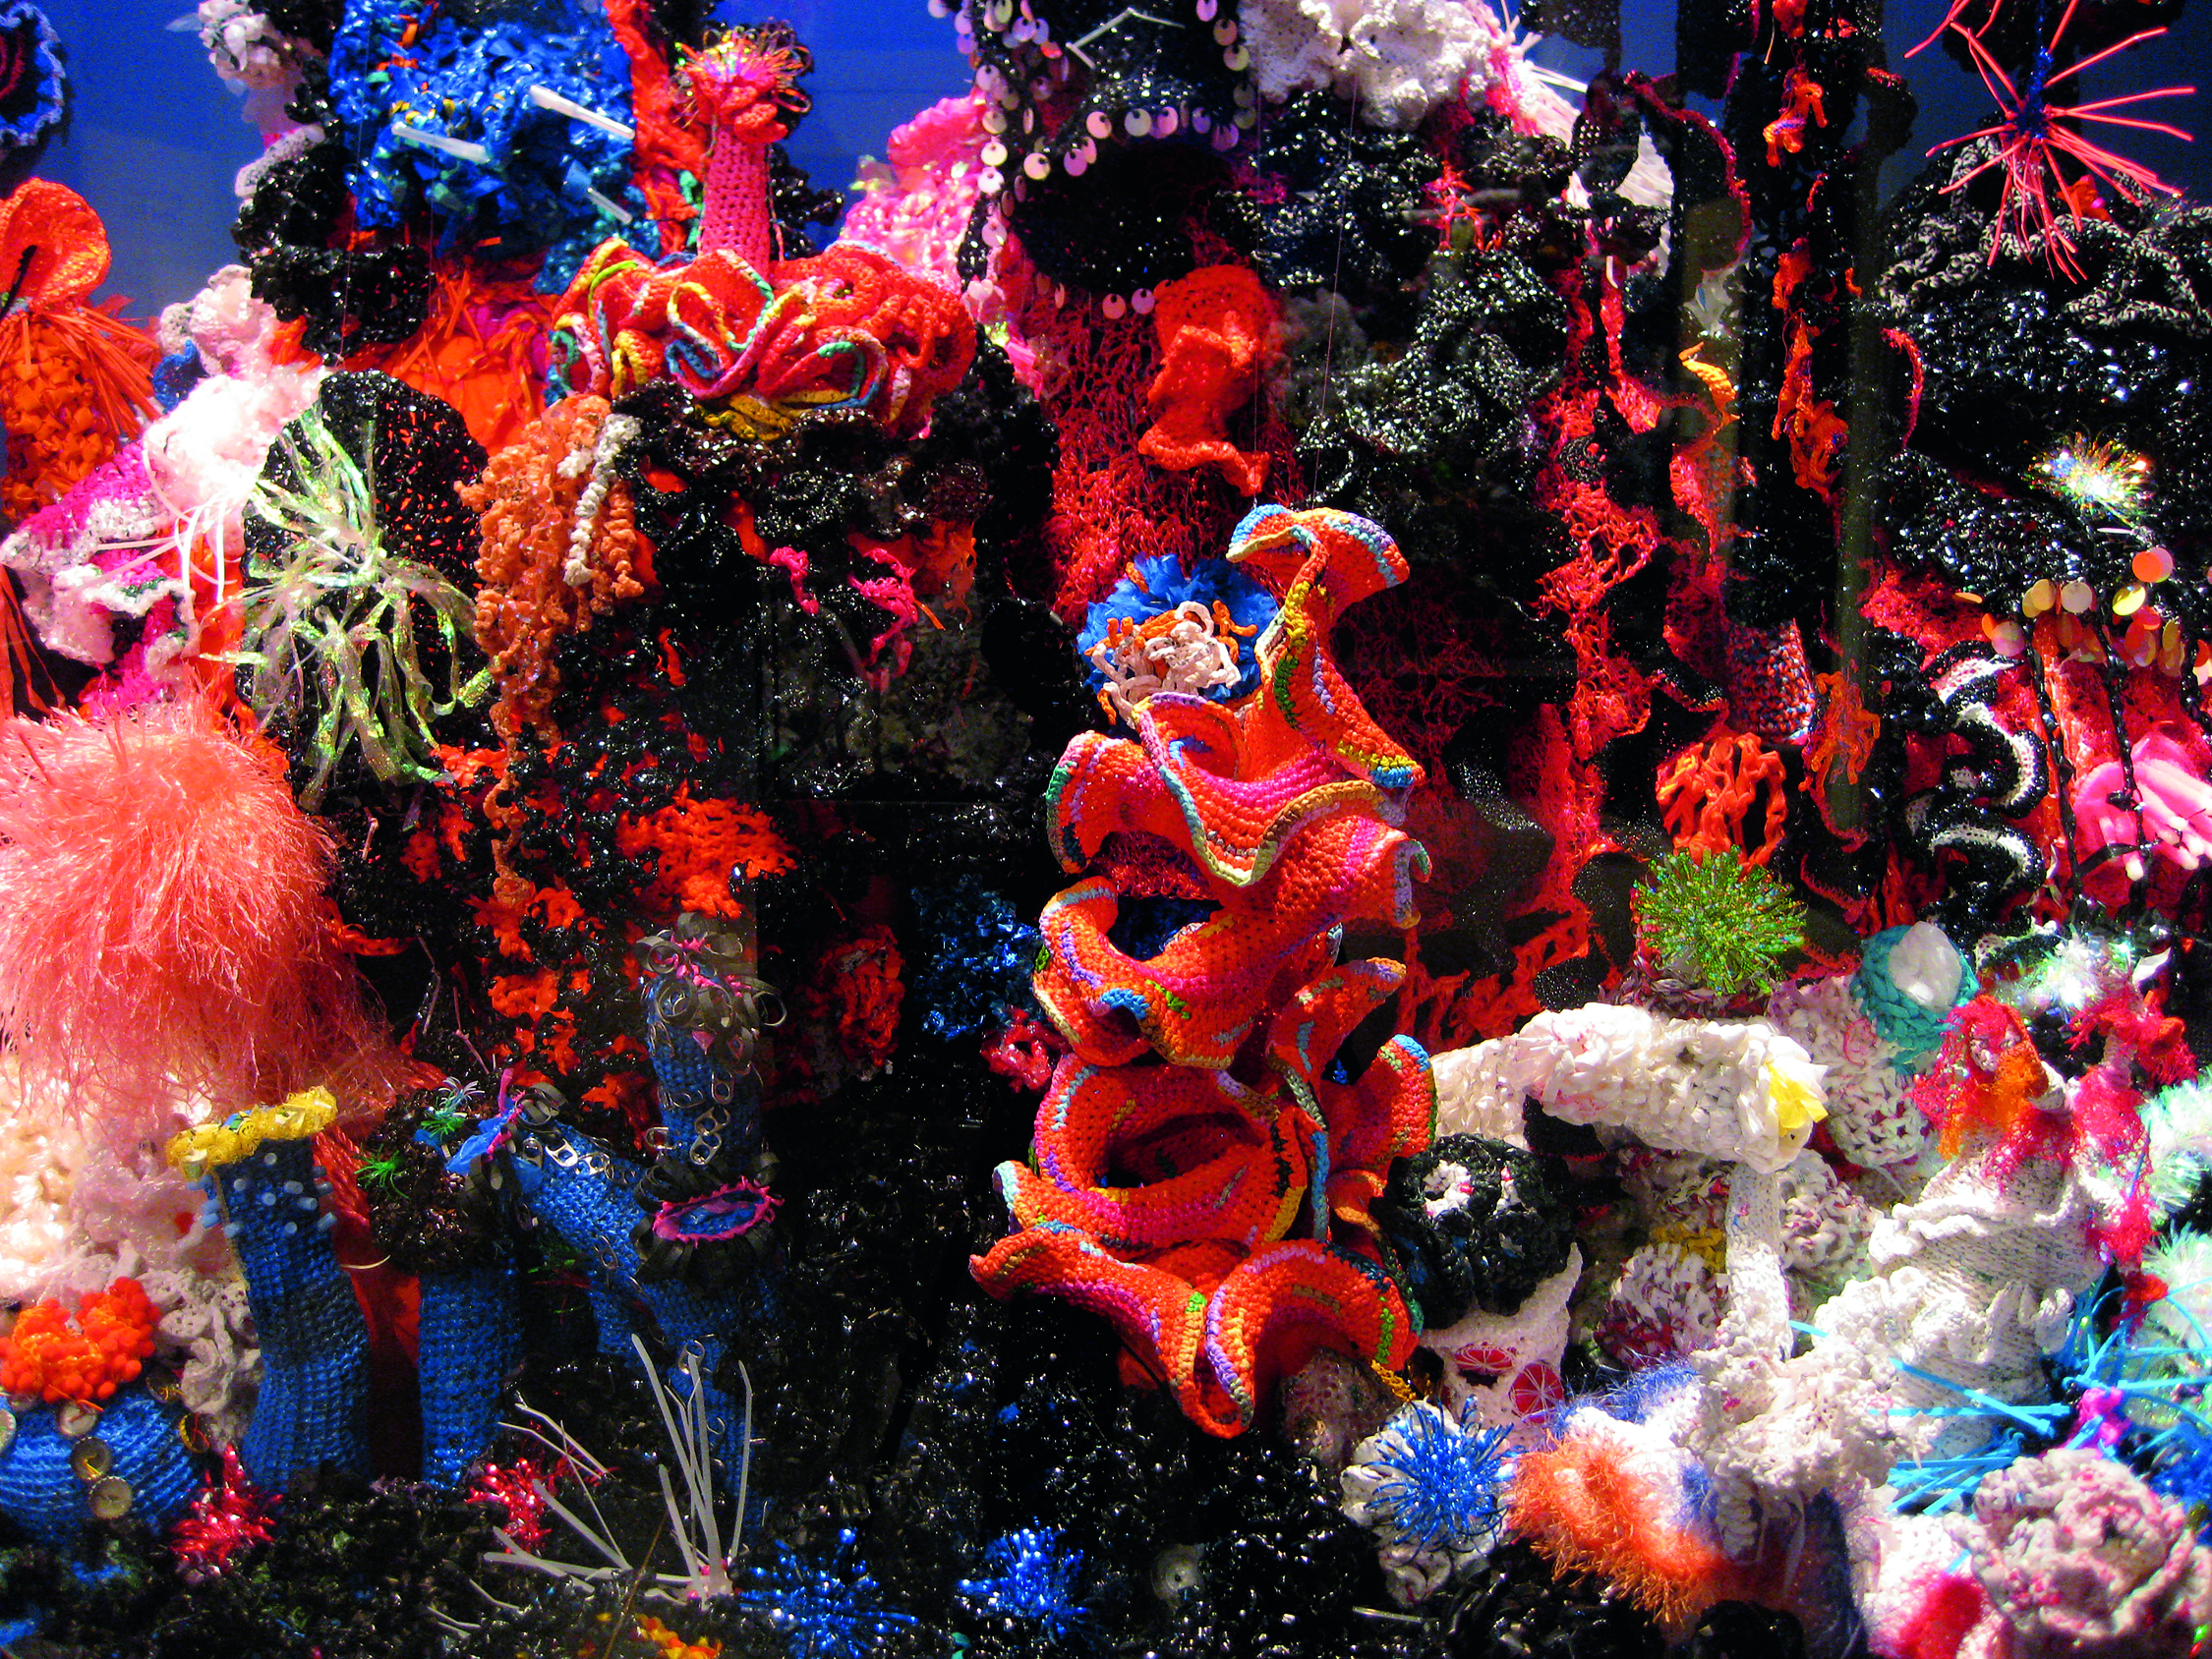 The Toxic Reef at the Smithsonian's National Museum of Natural History, Washington, D.C., 2011.